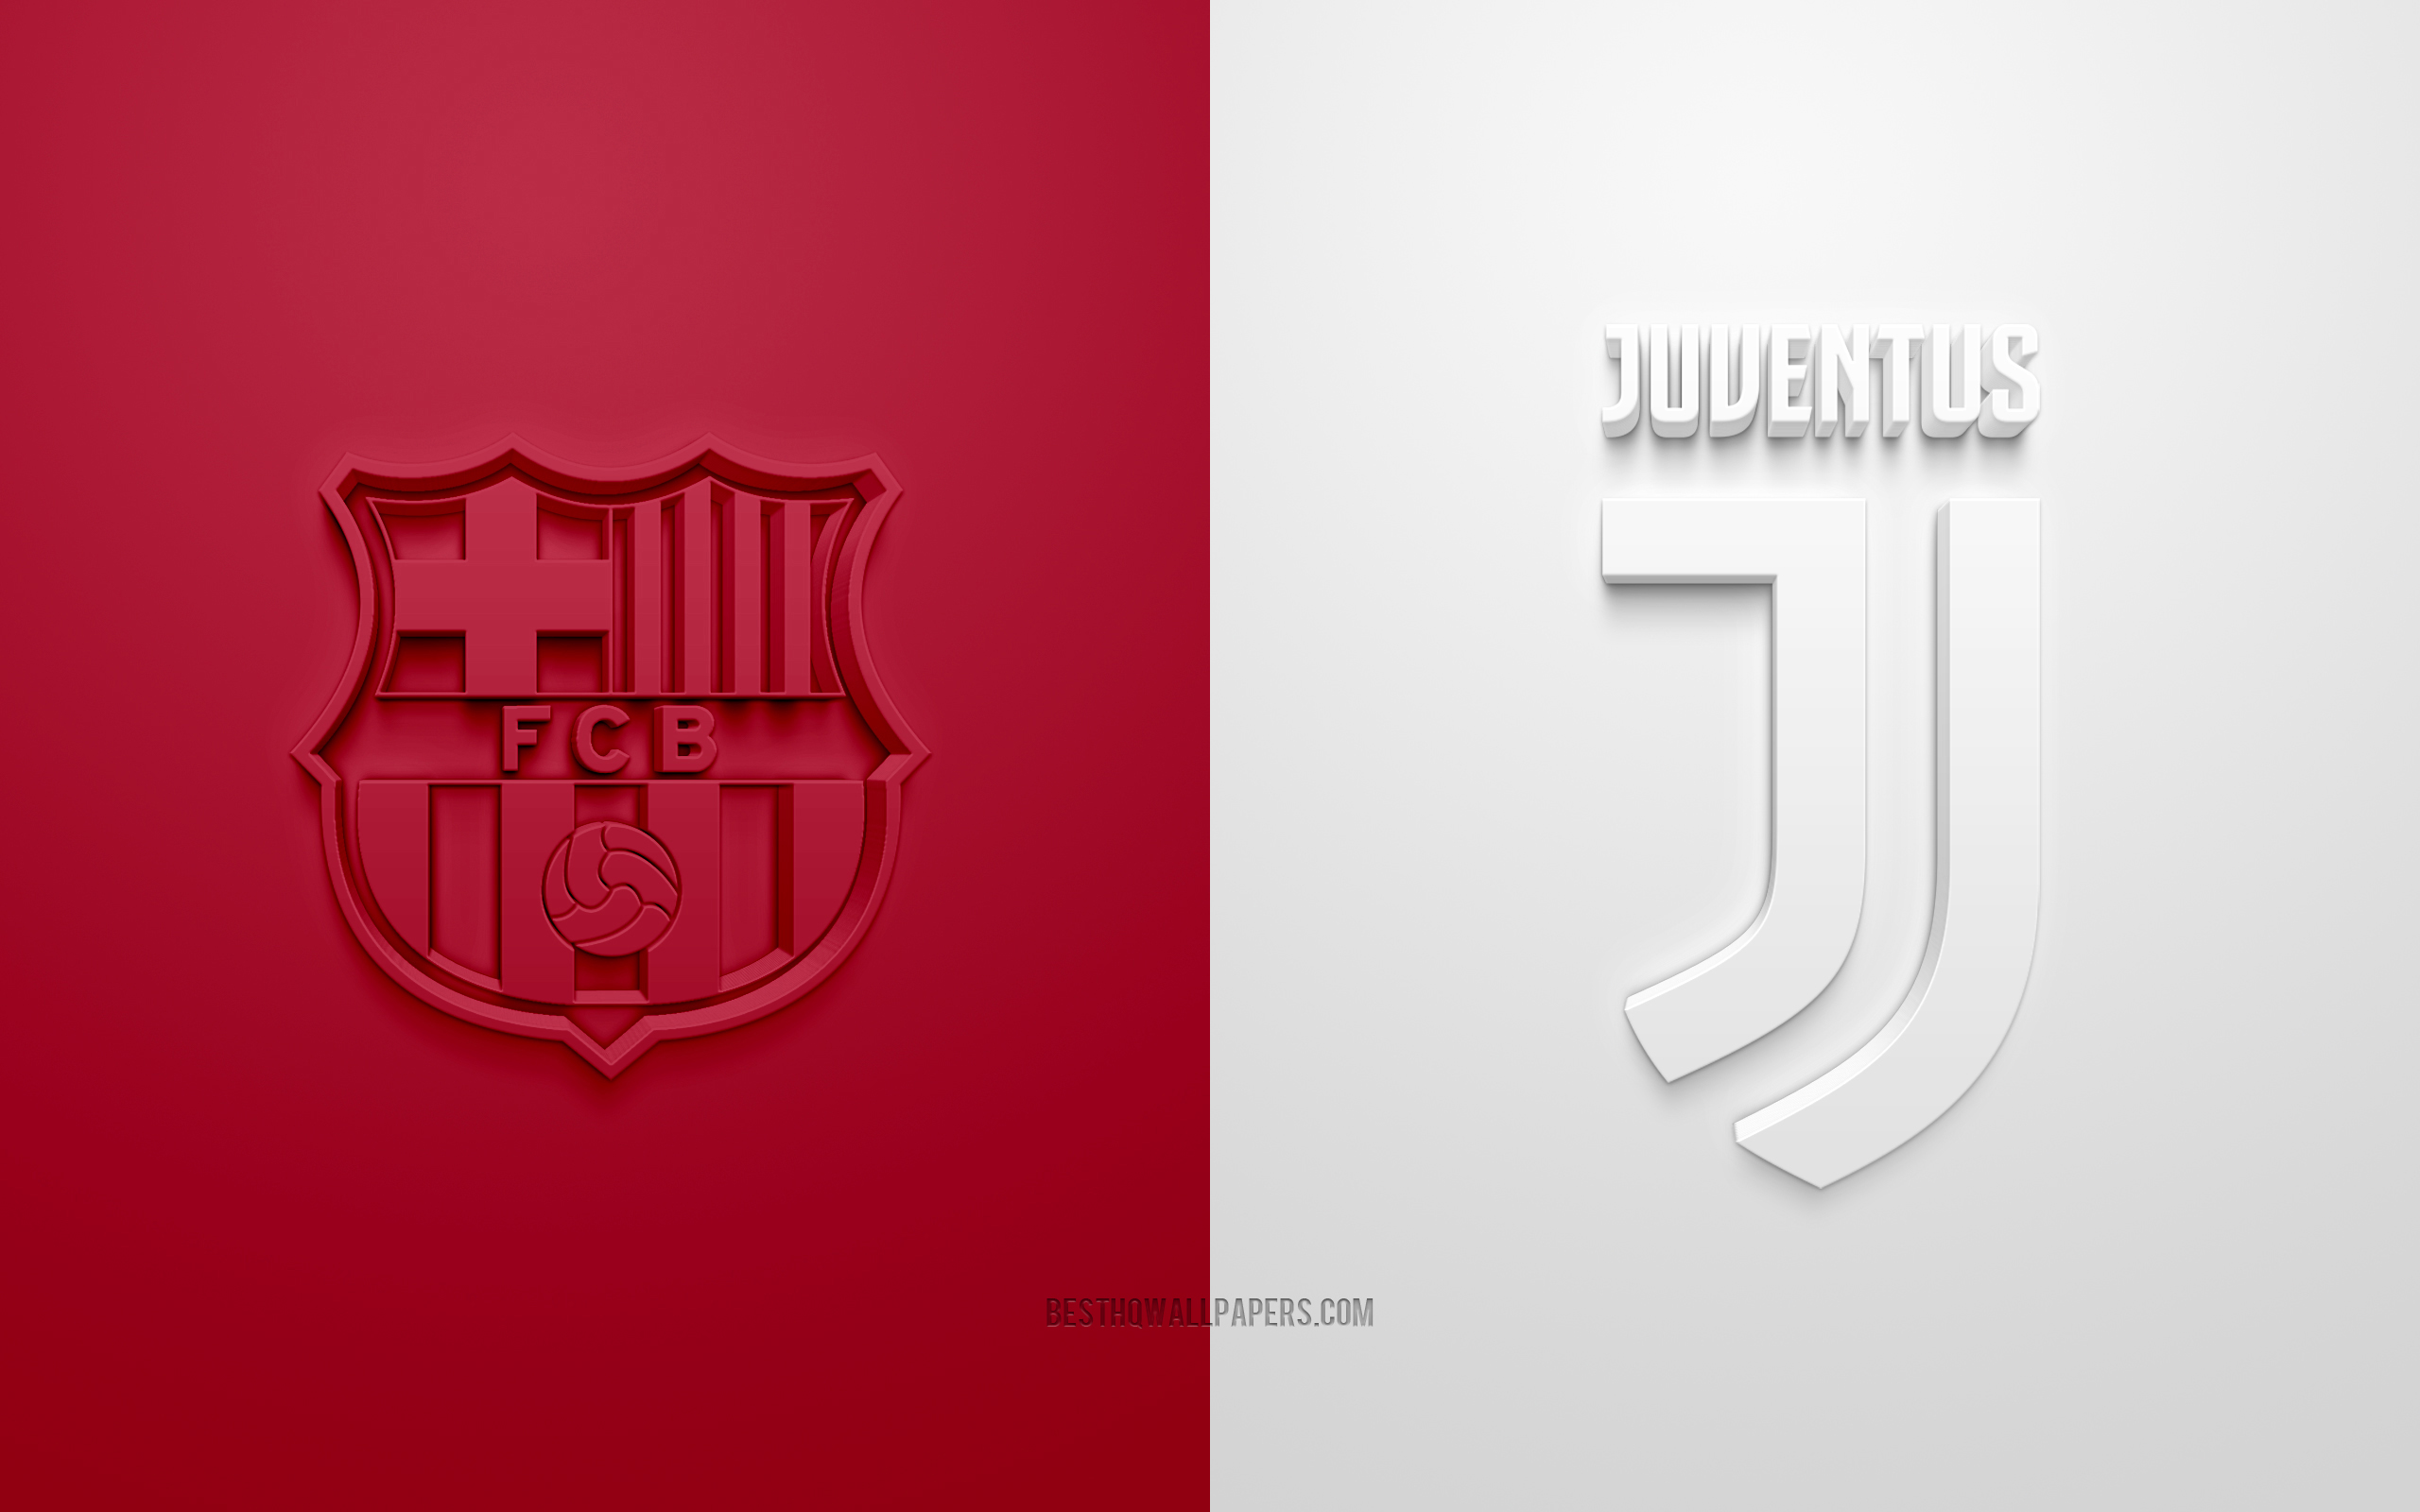 Download Wallpapers Barcelona Fc Vs Juventus Fc Uefa Champions League Group G 3d Logos Burgundy White Background Champions League Football Match Juventus Fc Barcelona Fc For Desktop With Resolution 2560x1600 High Quality